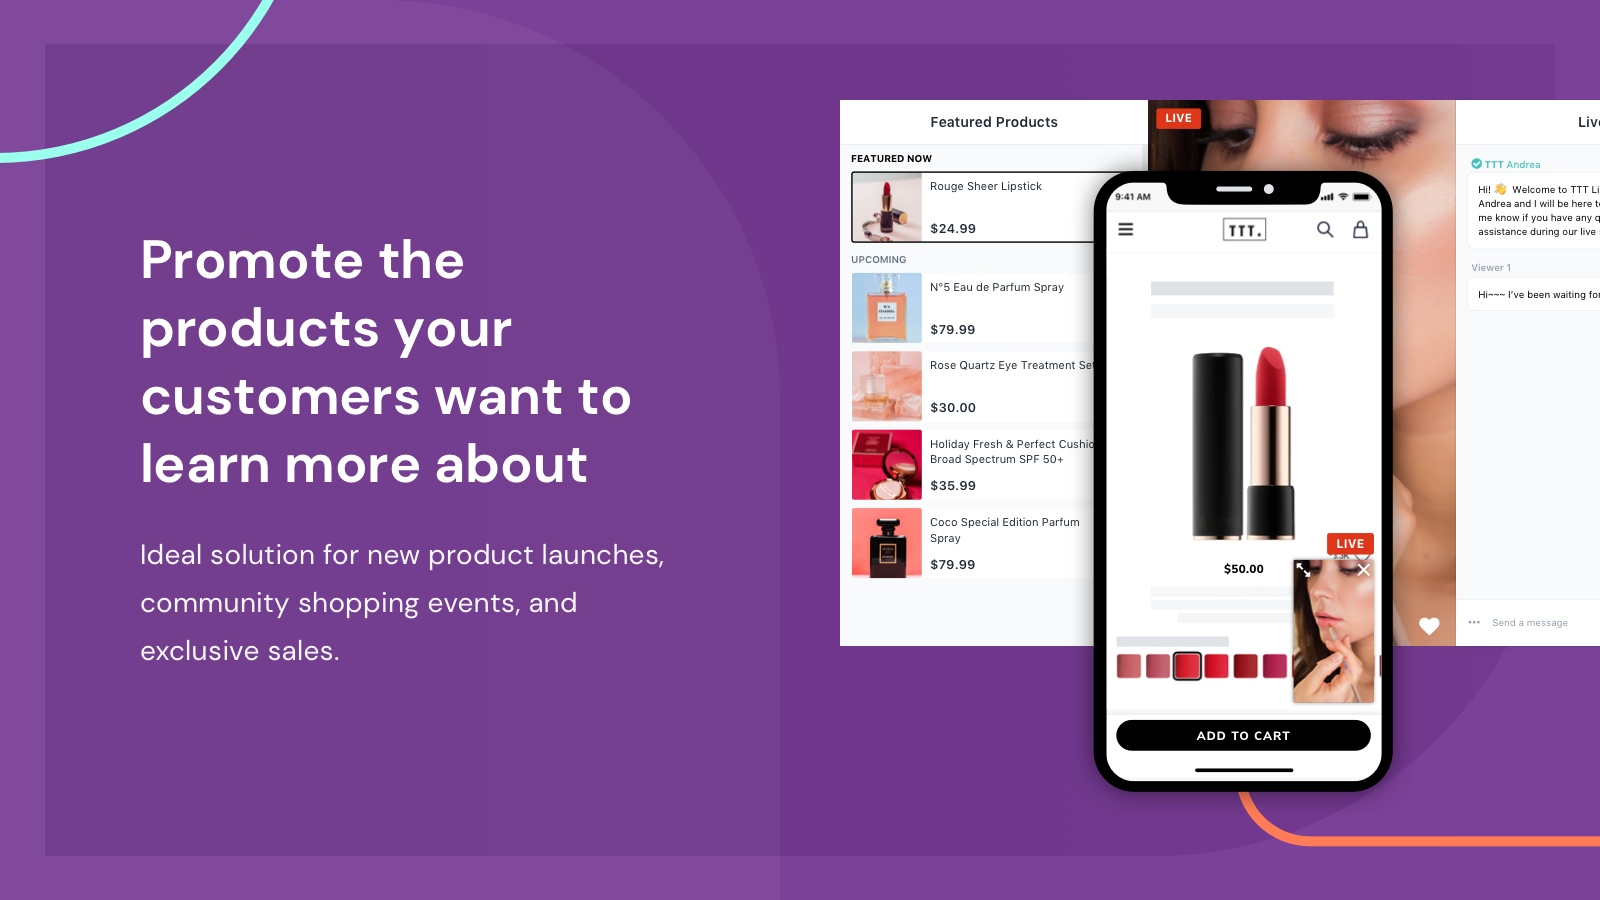 Promote the products your customers want to learn more about